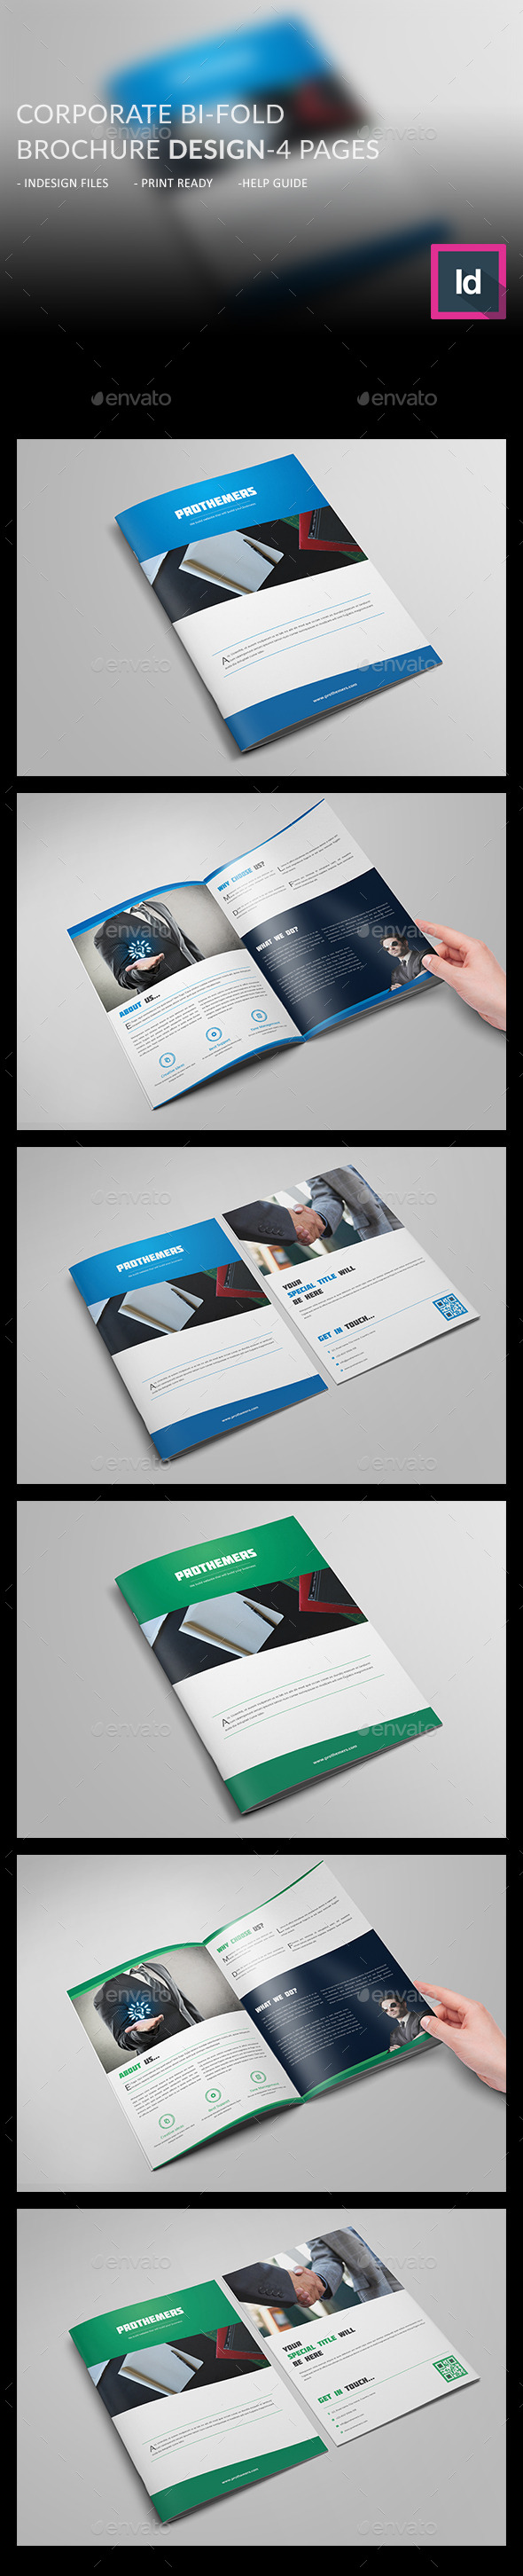 GraphicRiver Corporate Bi-Fold Brochure 4 Pages 11439105